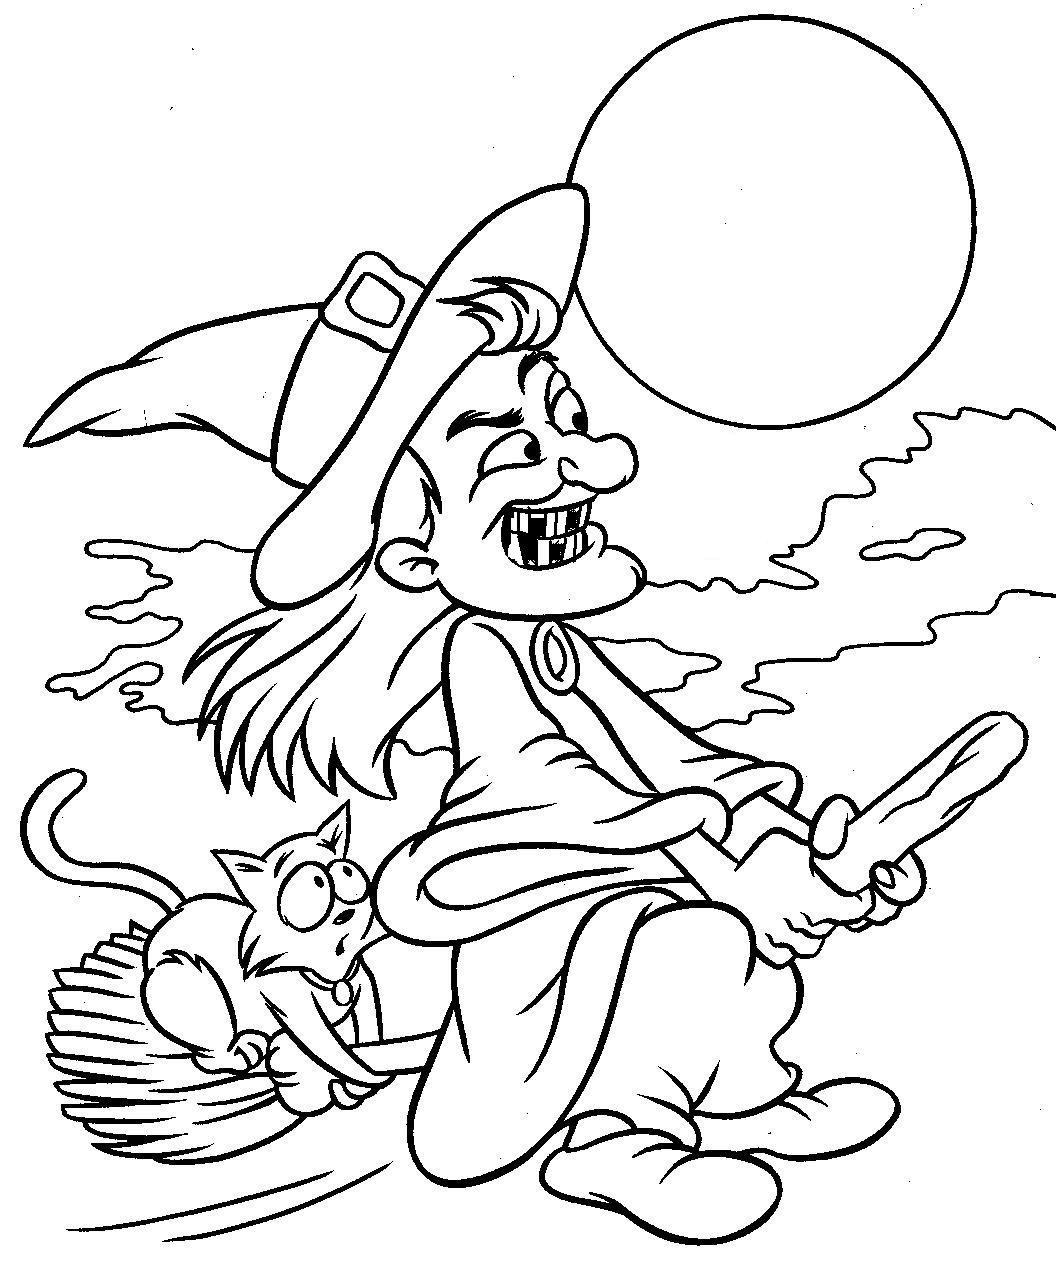 Halloween Coloring Sheets For Kids  coloring Halloween coloring pics